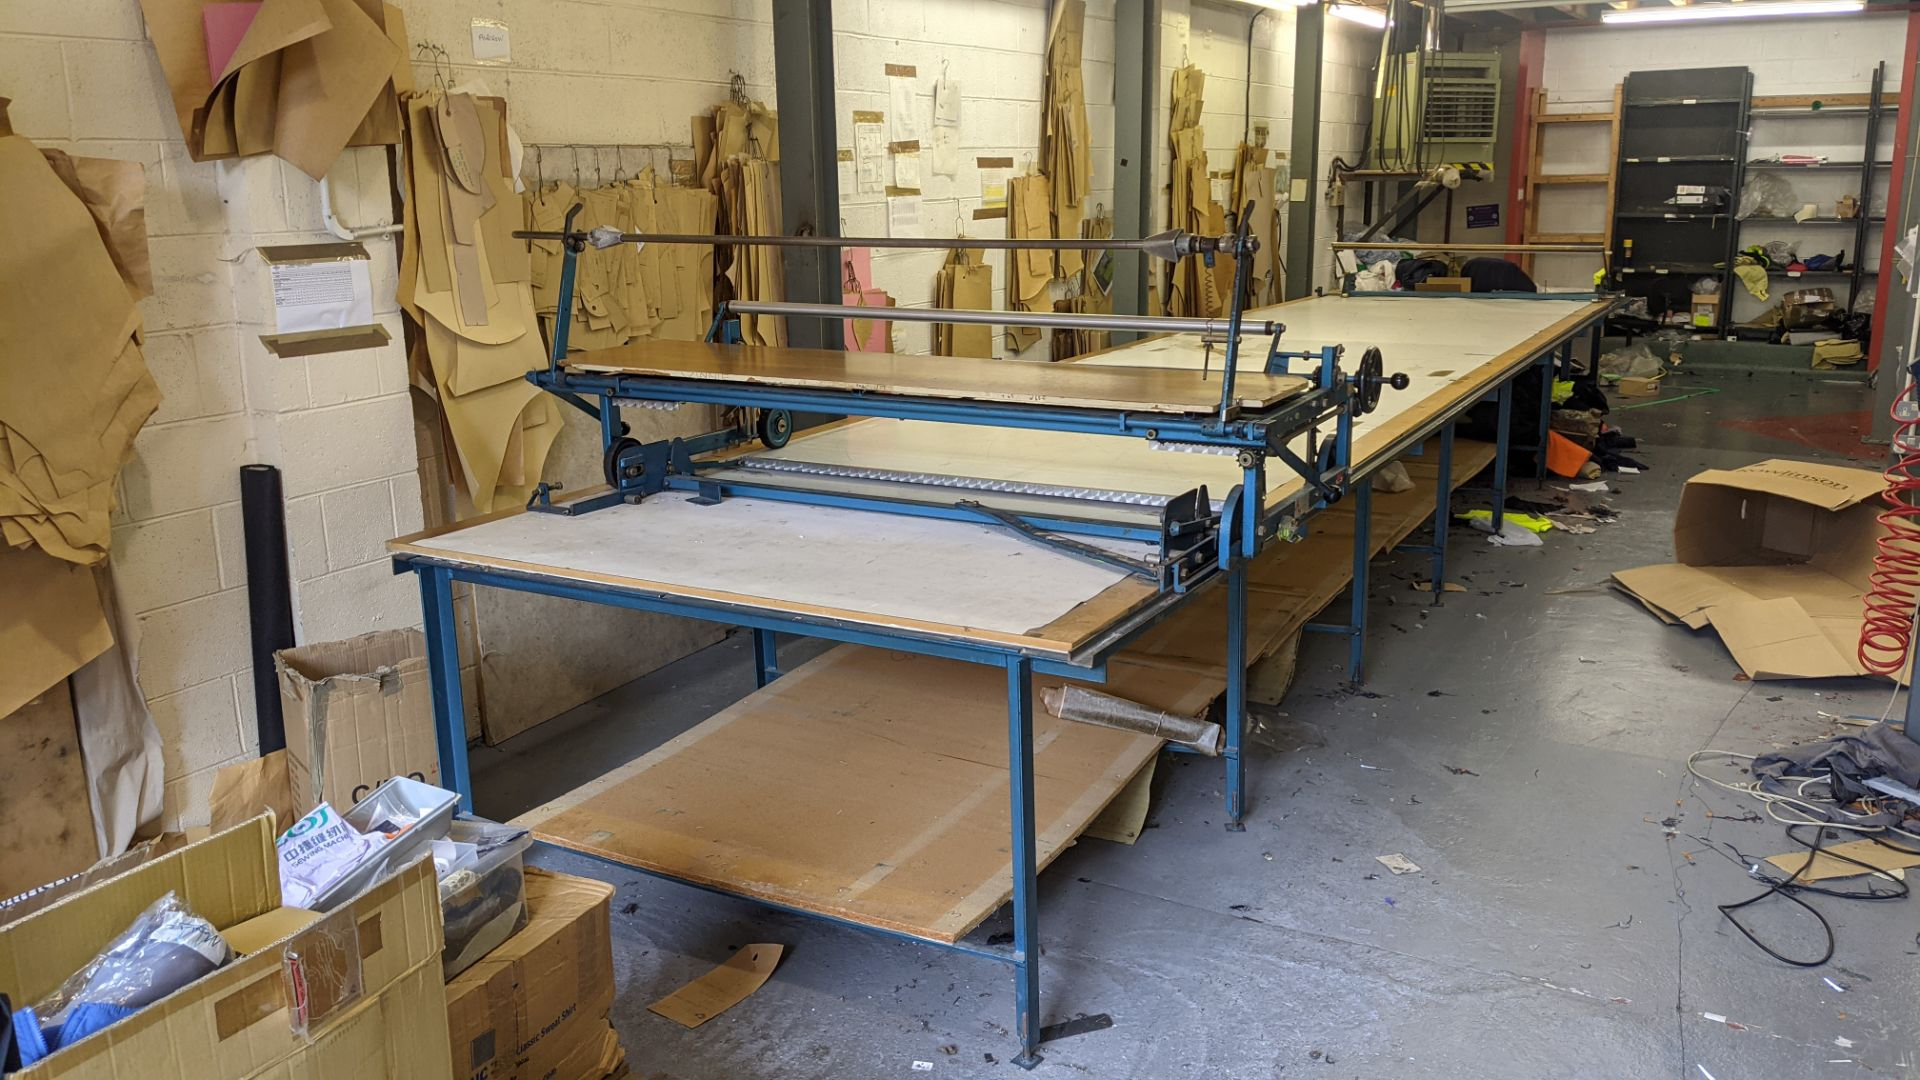 Large cutting table, as shown in 3 stacks. Please note photos taken in situ before the table was de - Image 3 of 16